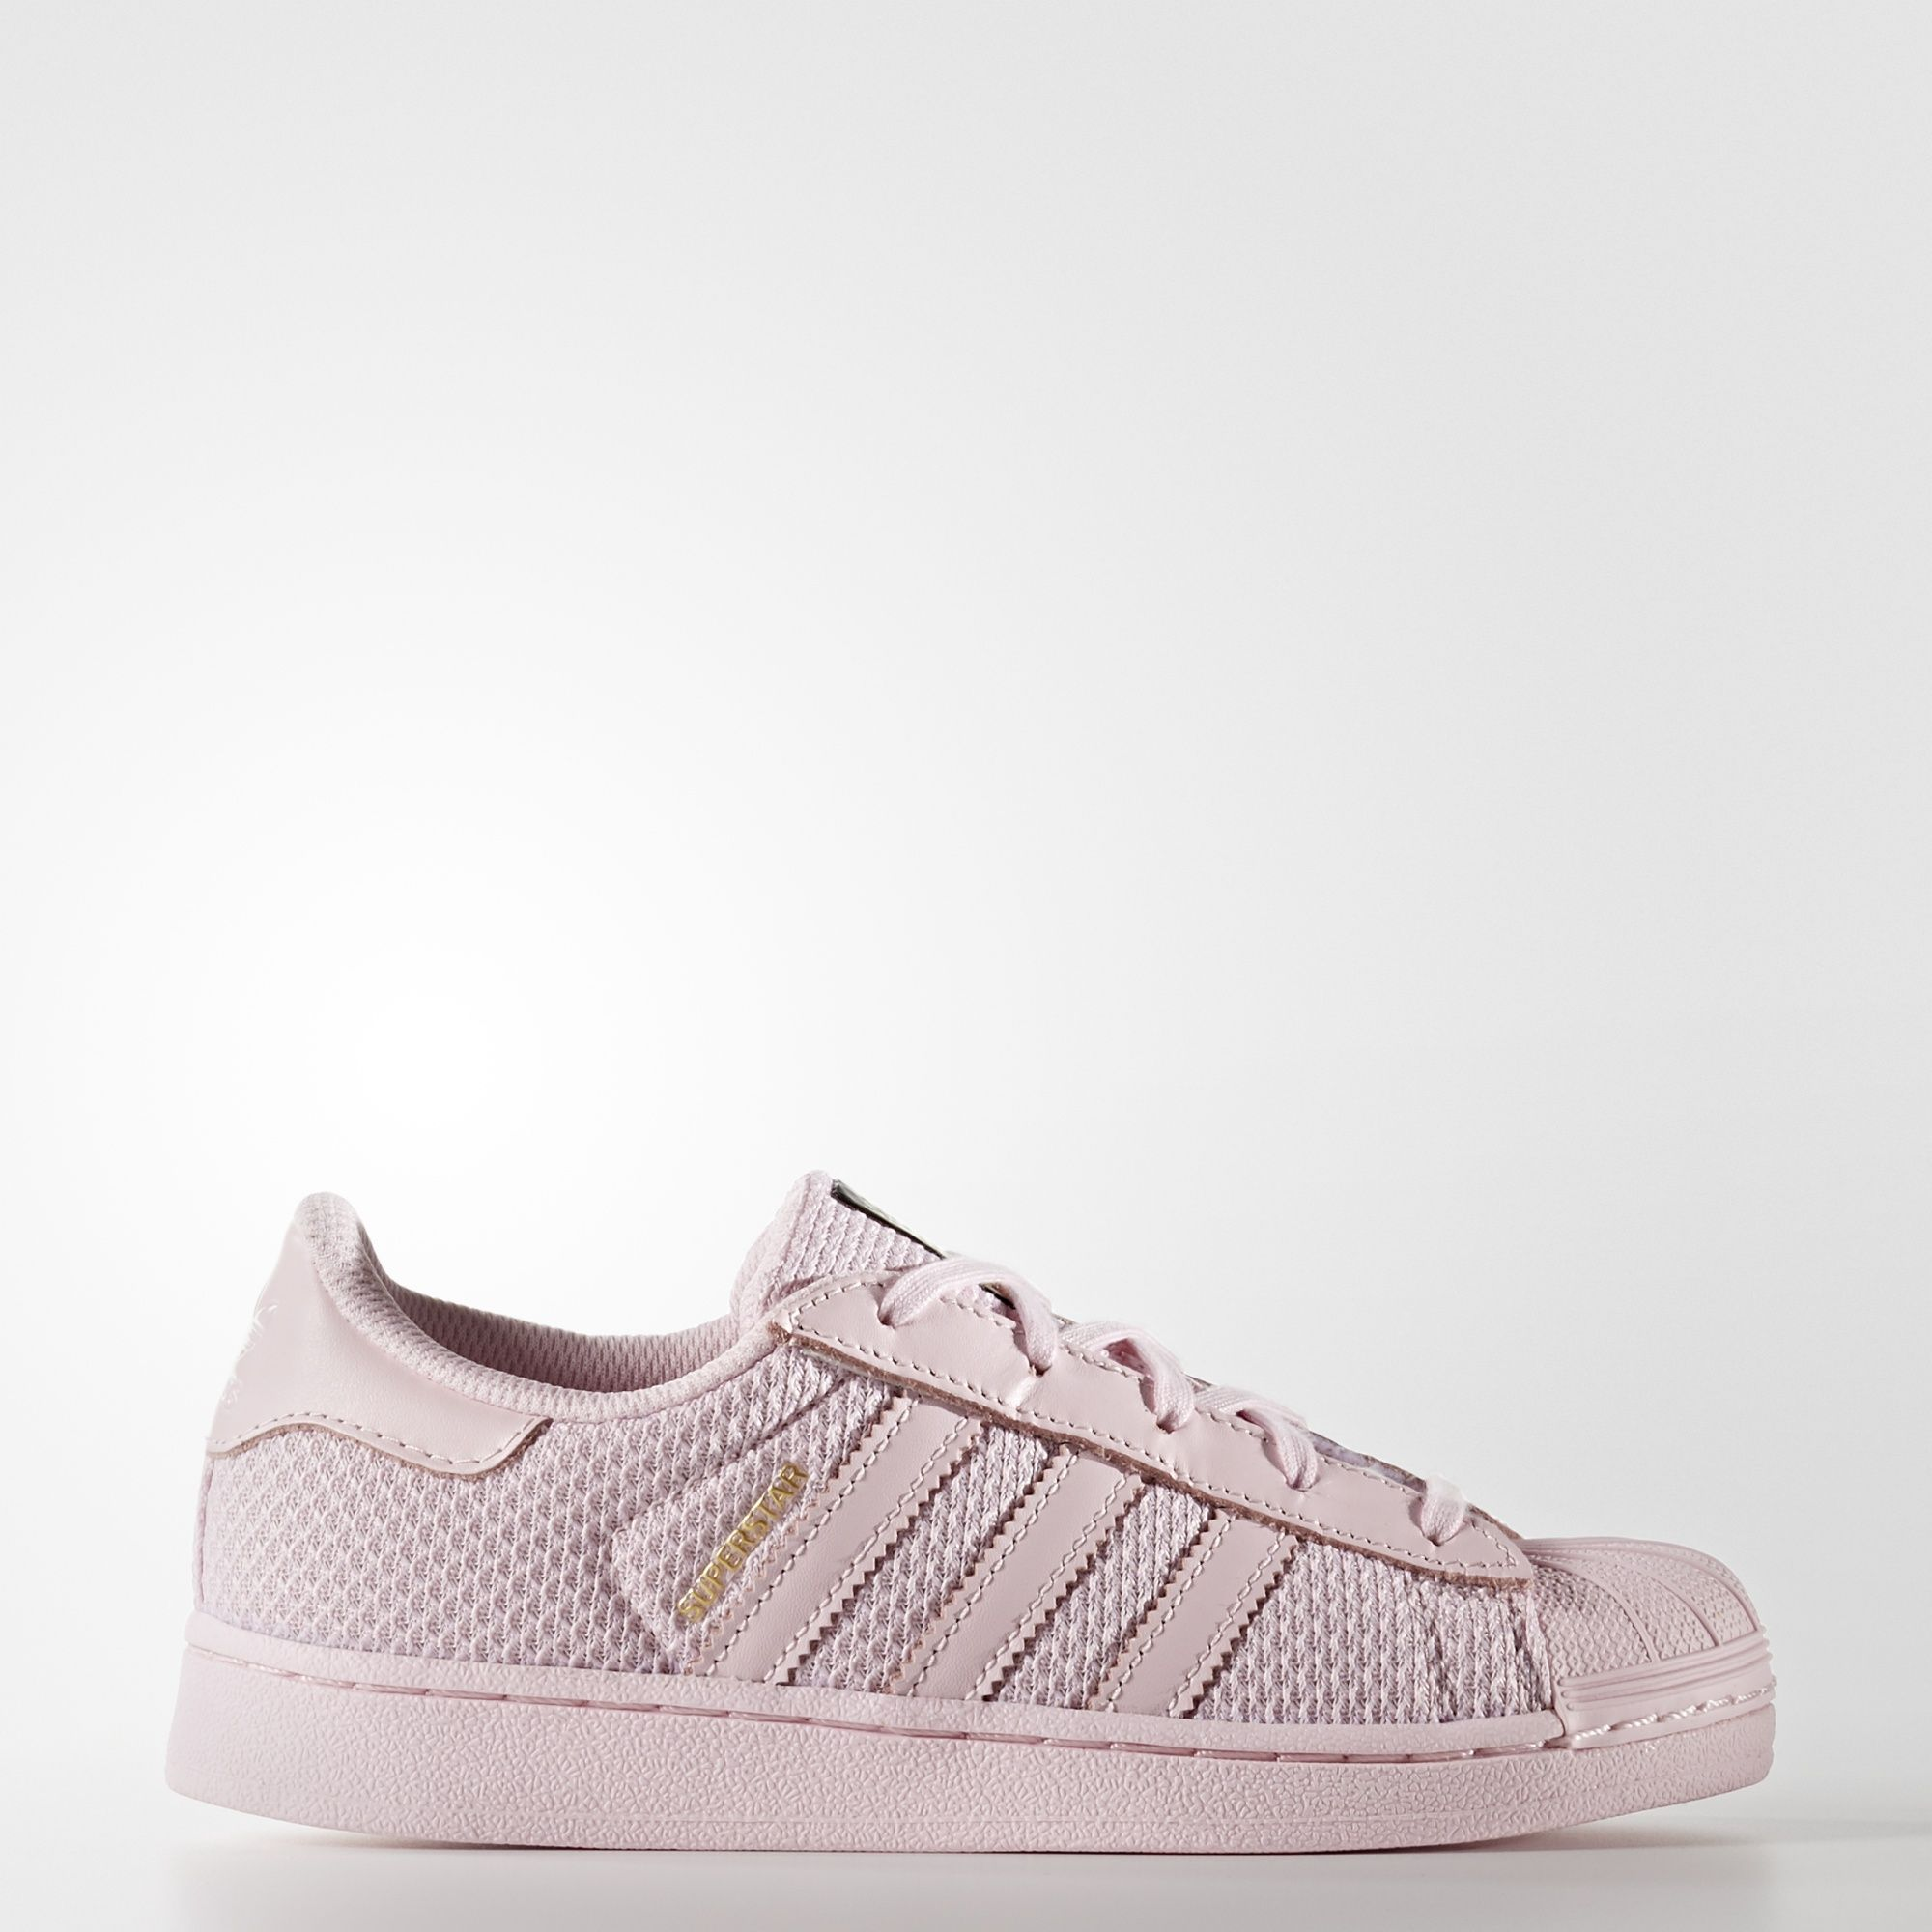 Explore Adidas Superstar Shoes, Superstars Shoes, and more!